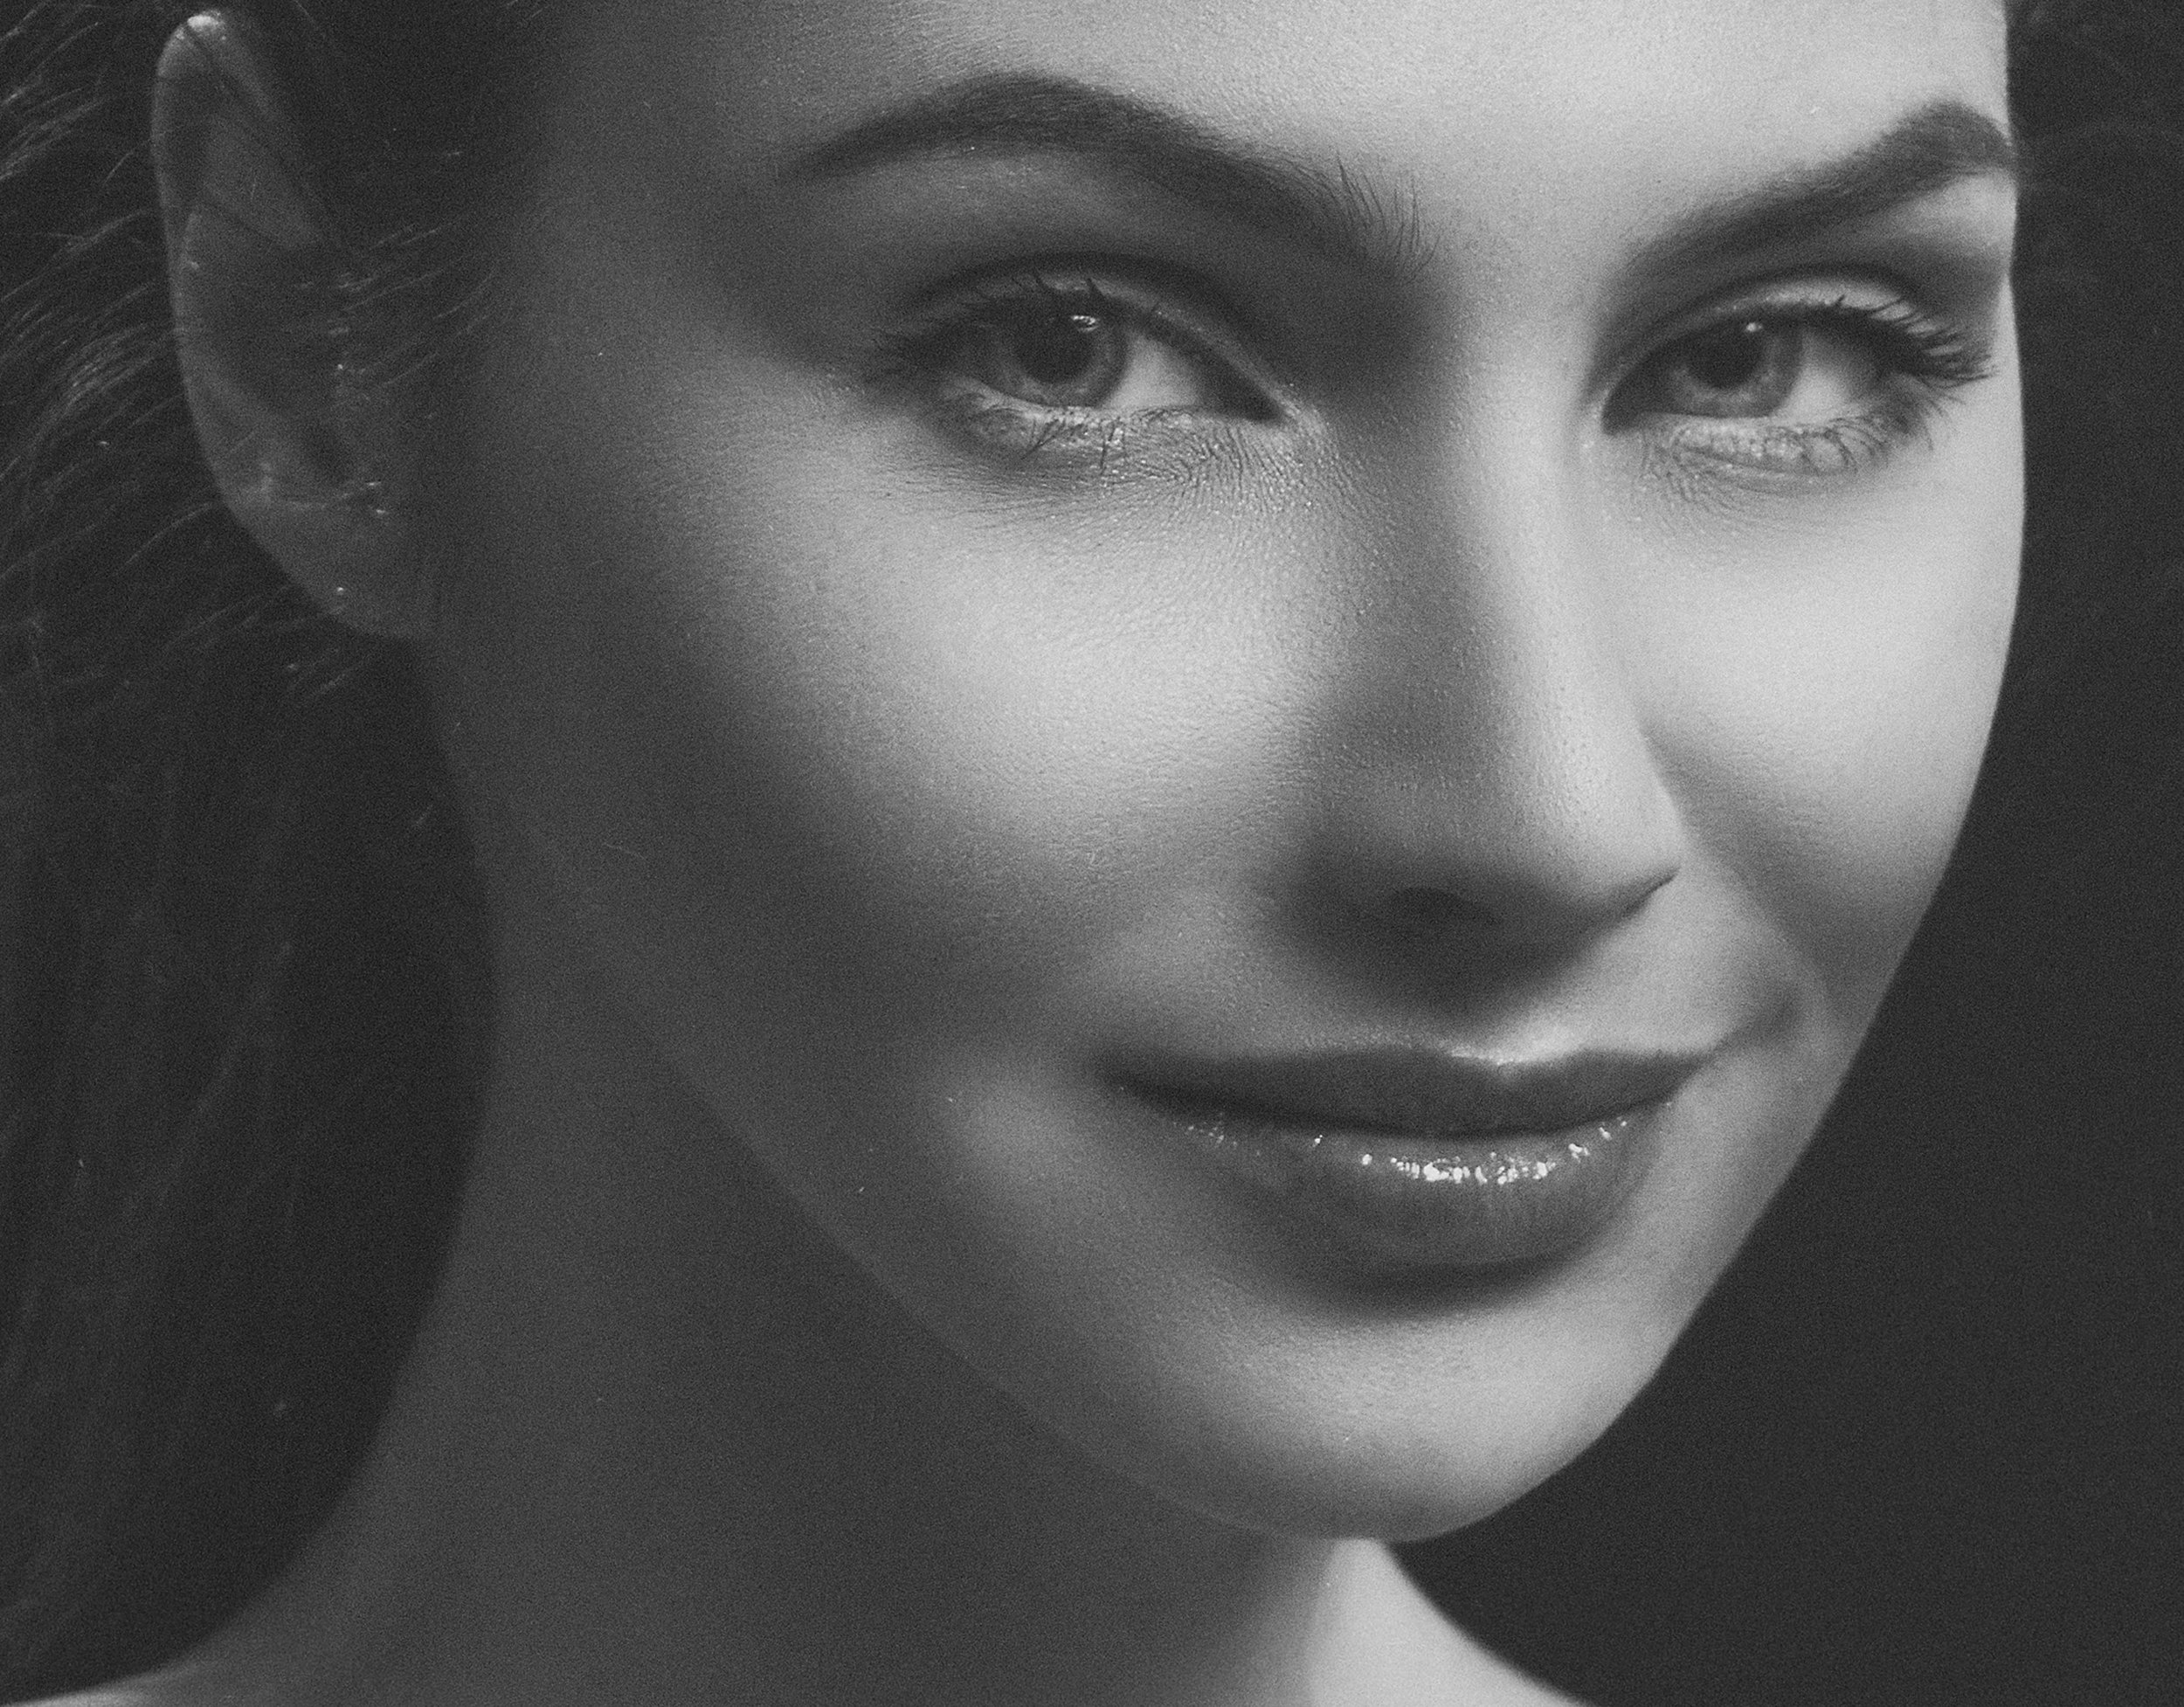 what we offer - From injectables to skin treatments.Find out more about what we offer here at Dr. Fiona Milnes Rooms.